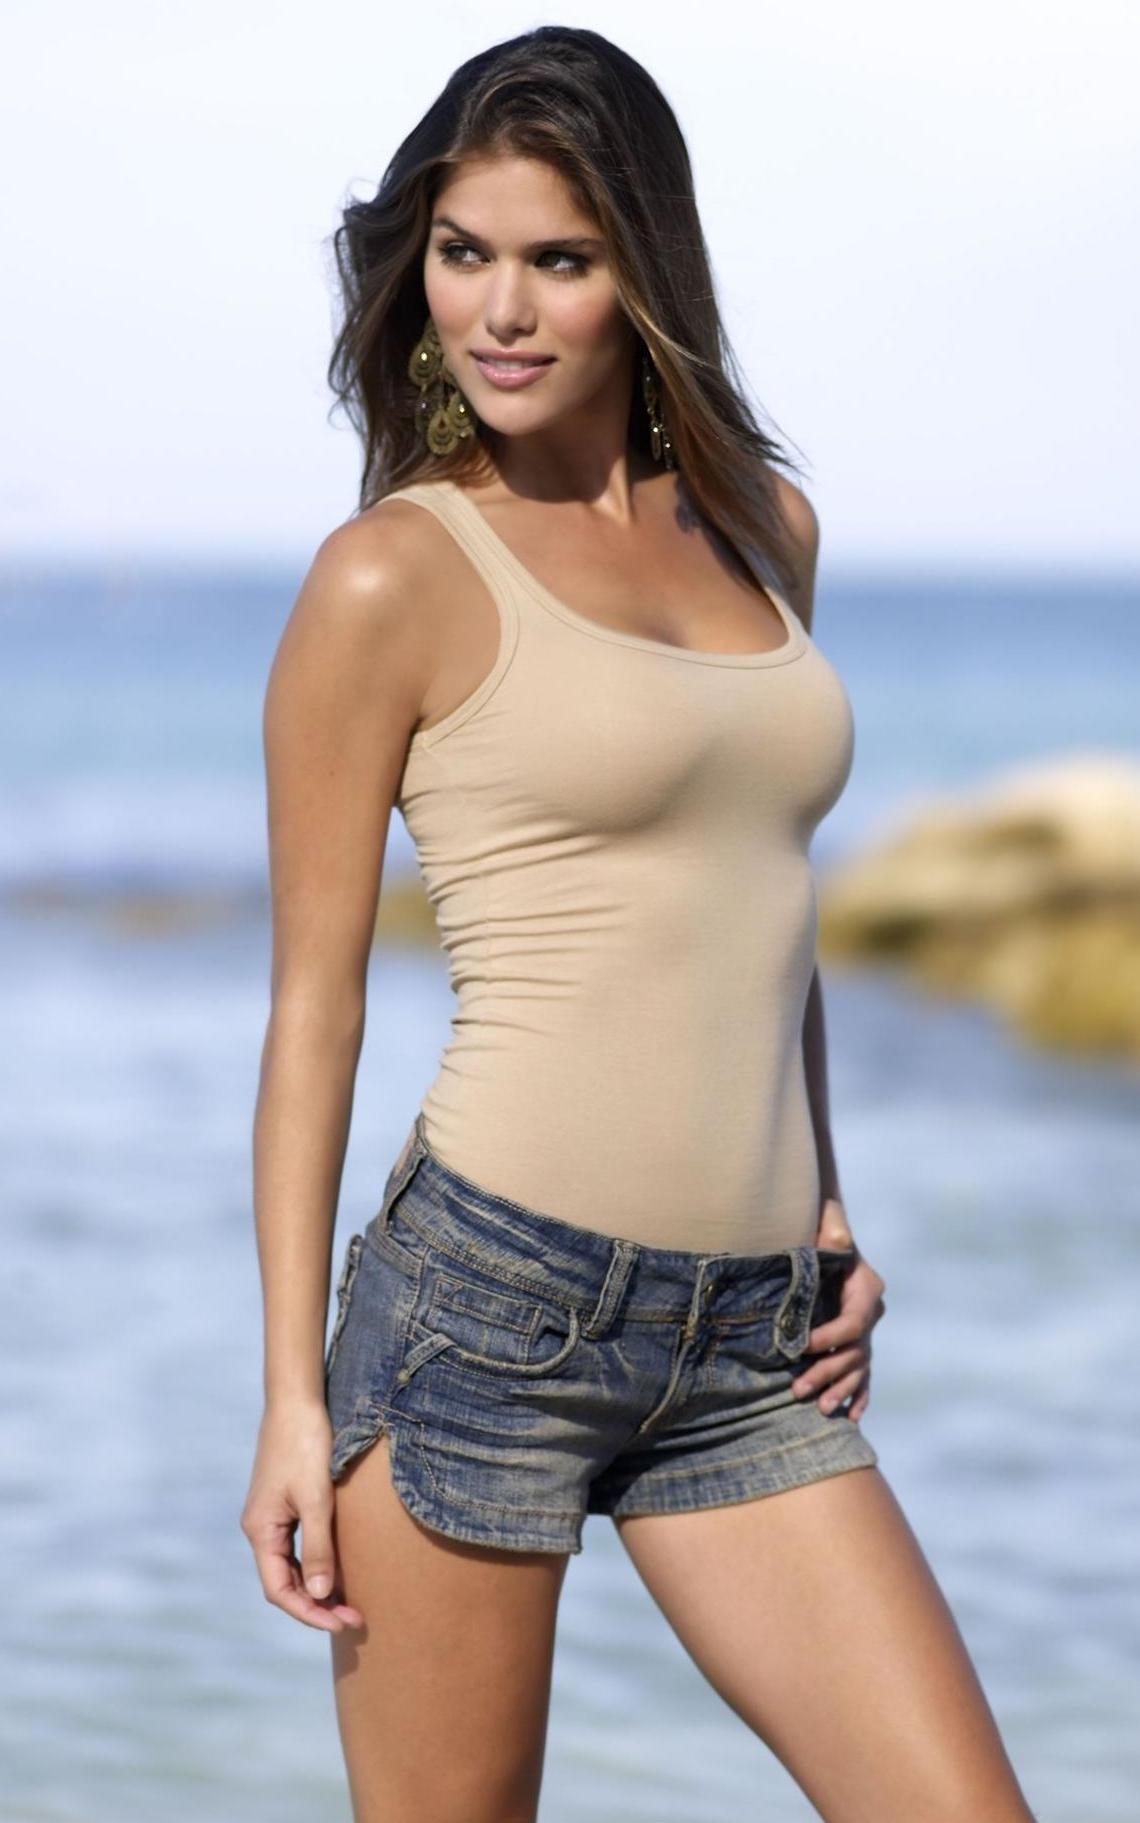 Anahi Hot who is hotter?